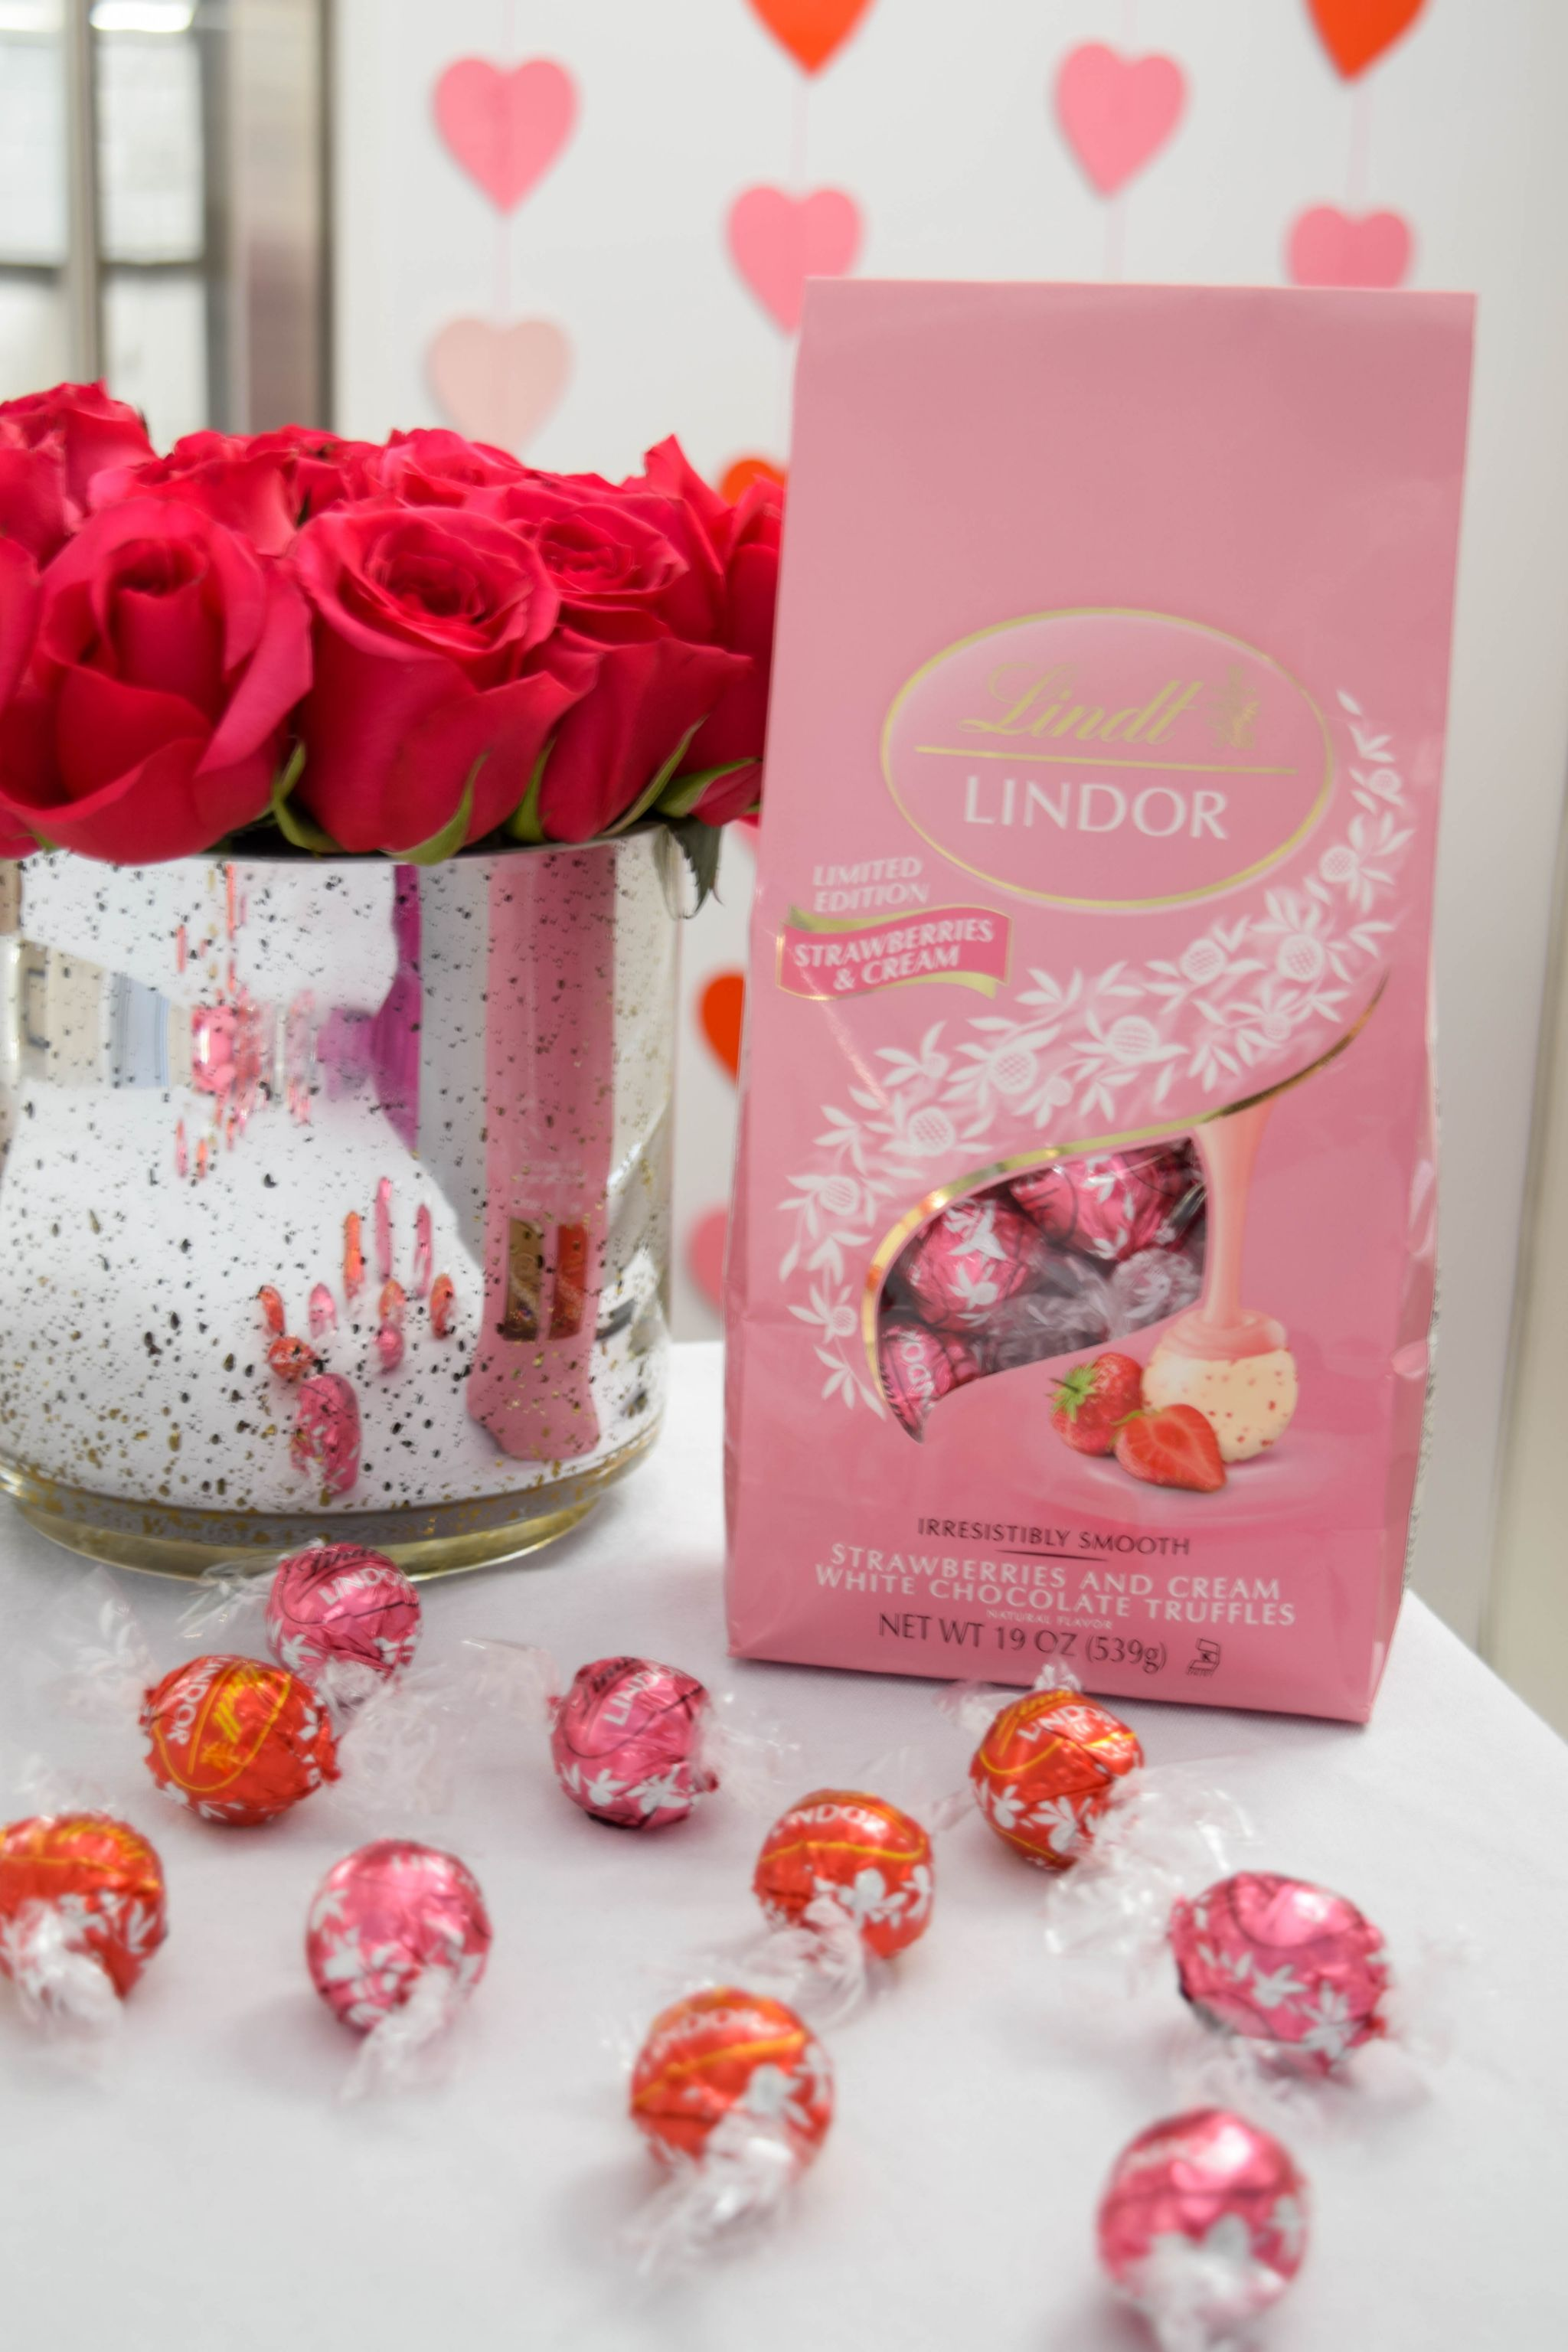 Champagne Chocolate Galentine S Day Brunch With Lindt Lindor Truffles Pink Party Decor Ideas Boston Chic 26